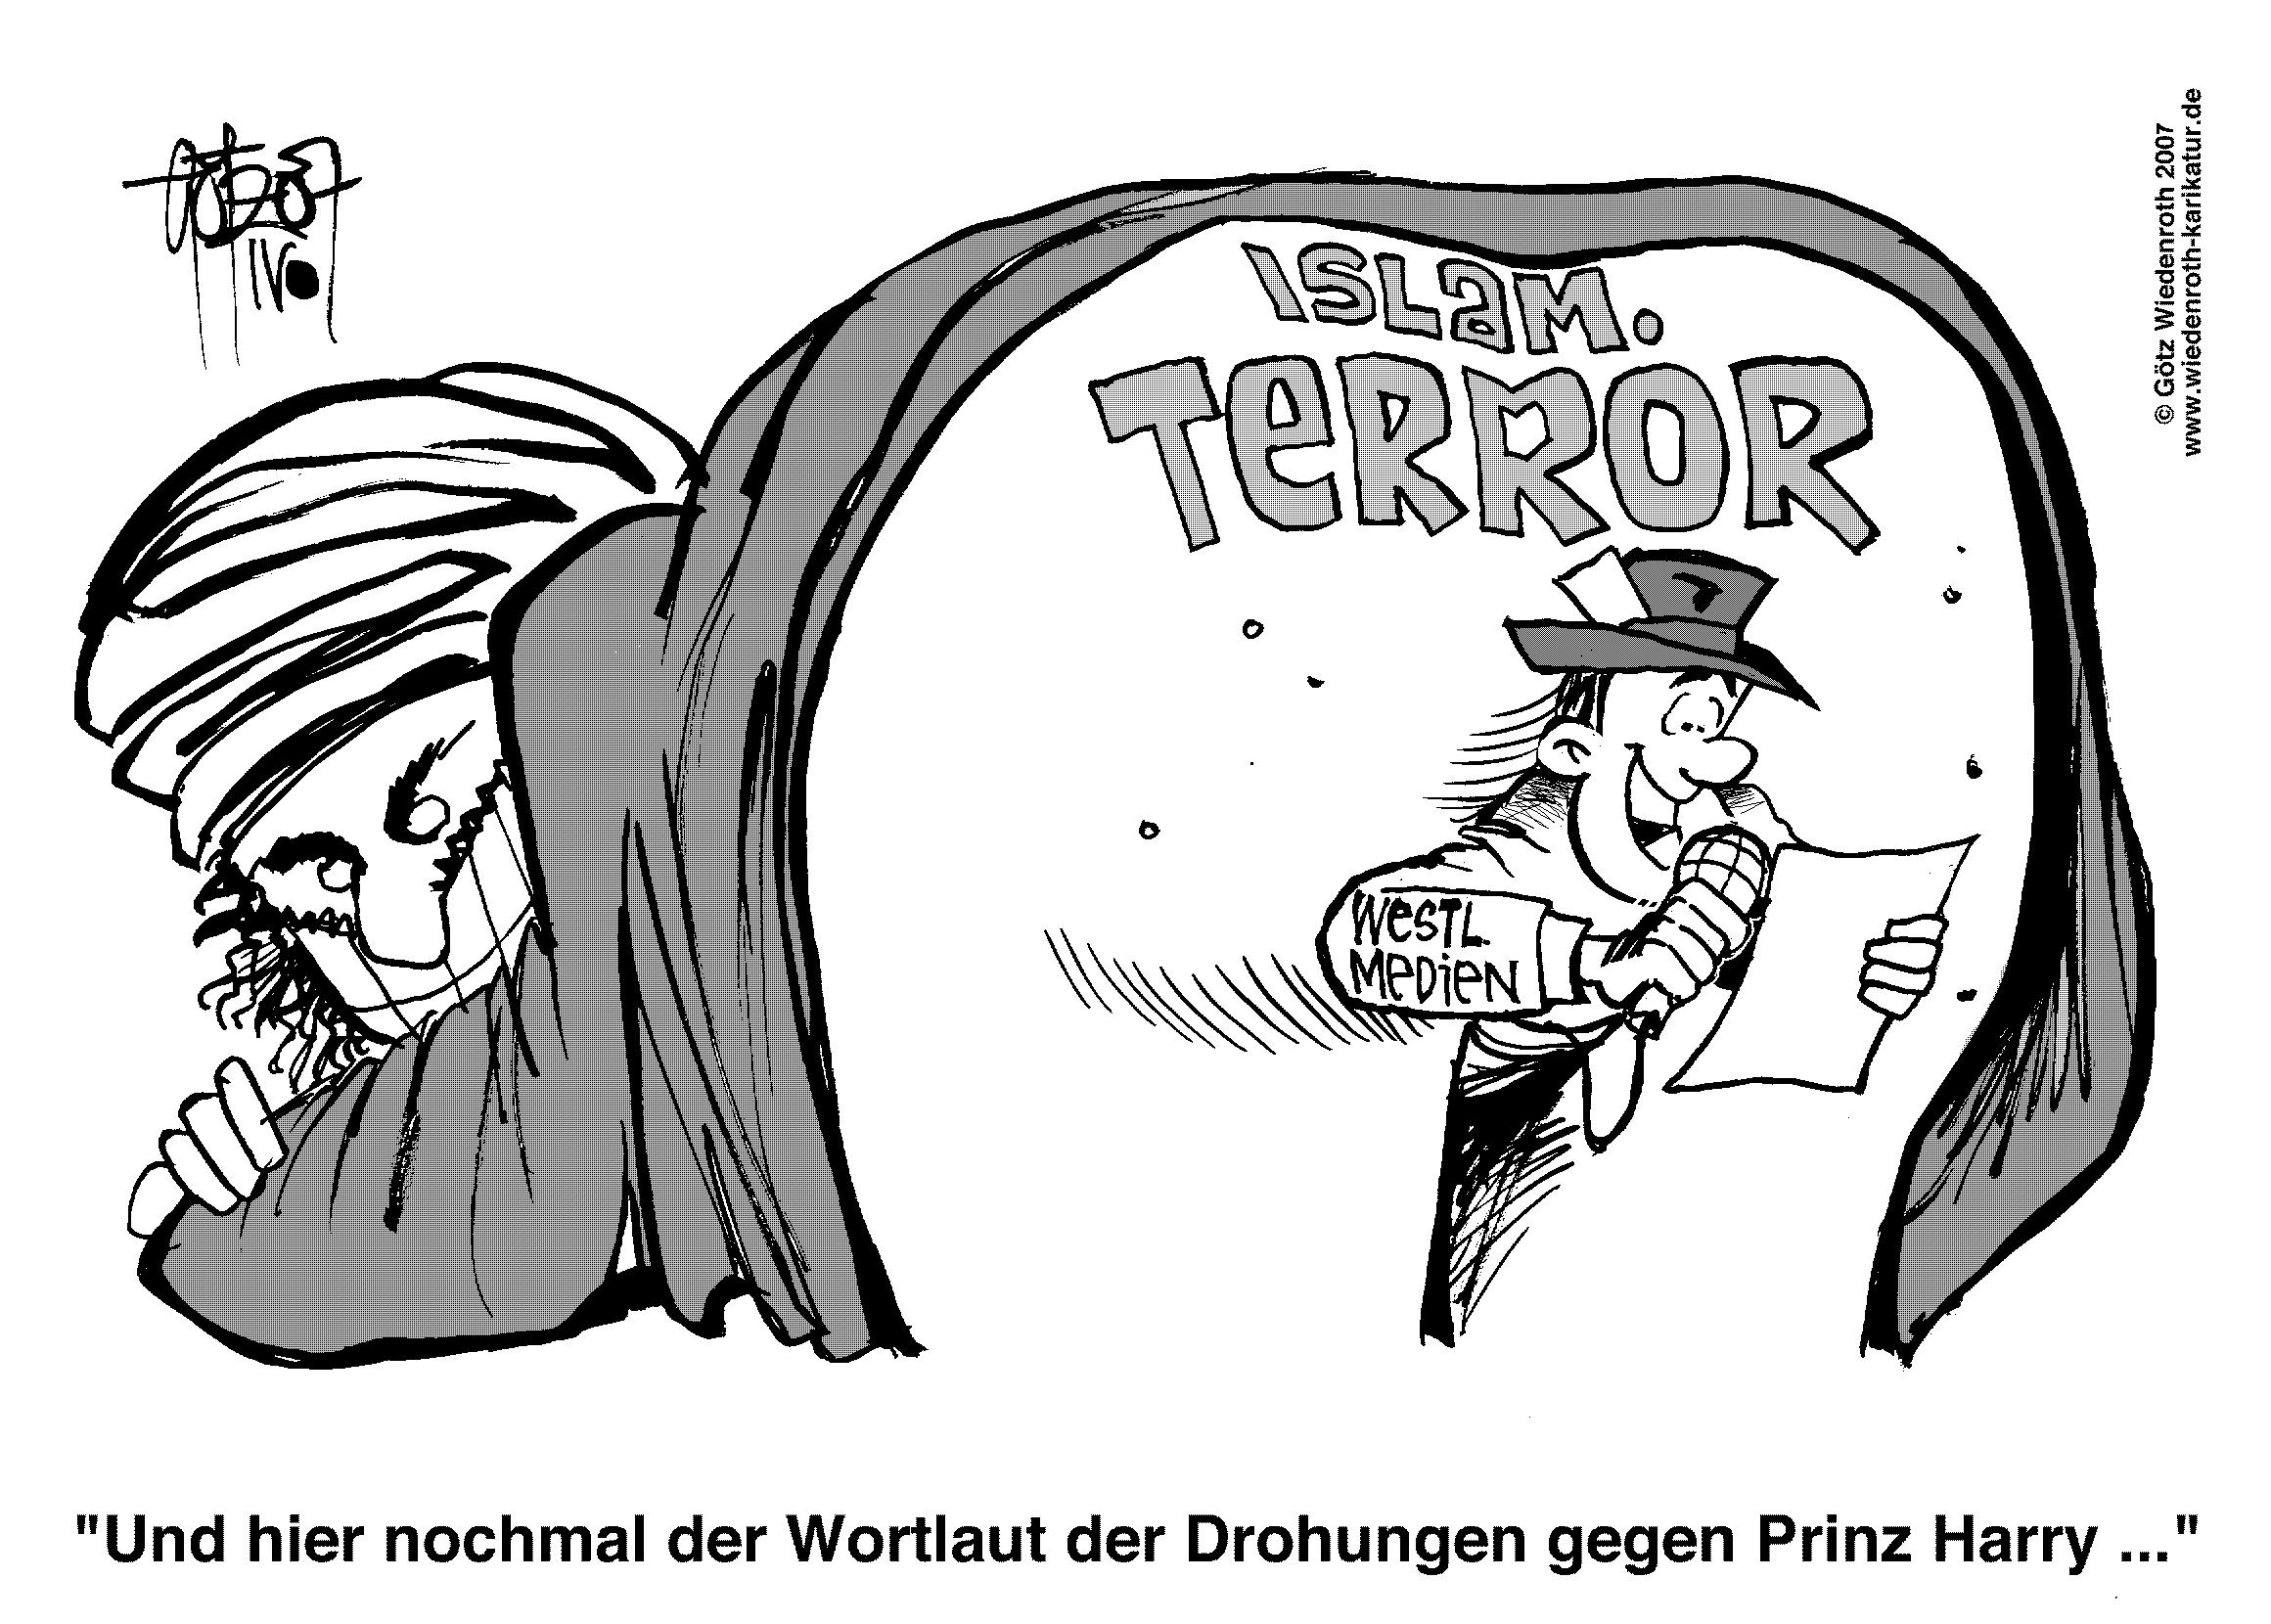 Islam, Terror, Afghanistan, Presse, Medien, Harry Windsor, Prinz Harry